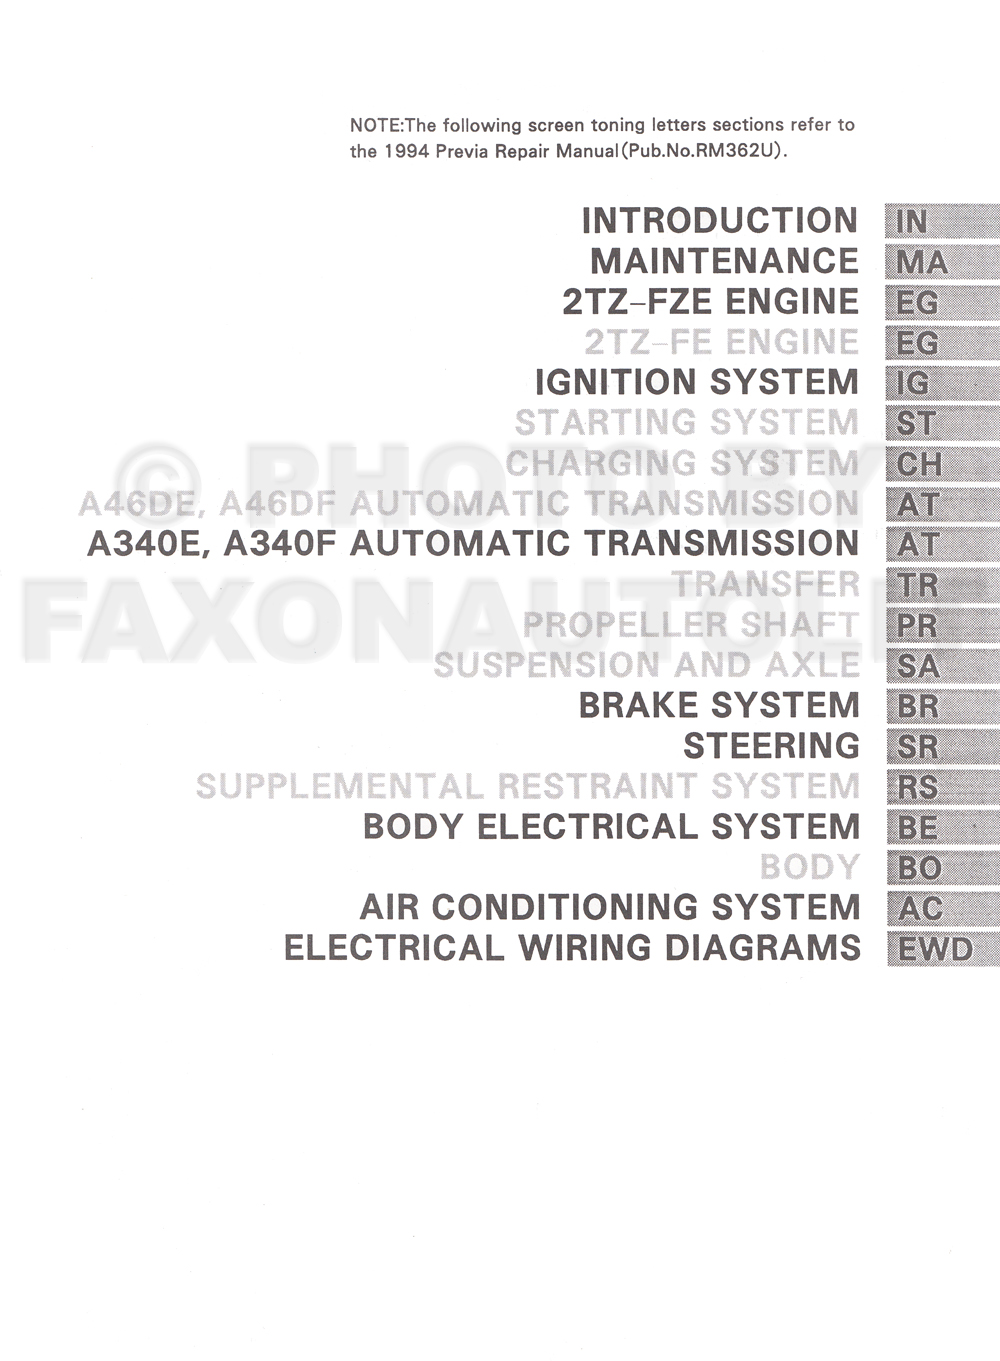 Toyota Previa Transmission Diagram Estima Wiring Download Van Repair Shop Manual Original Supplement 1000x1361 Image